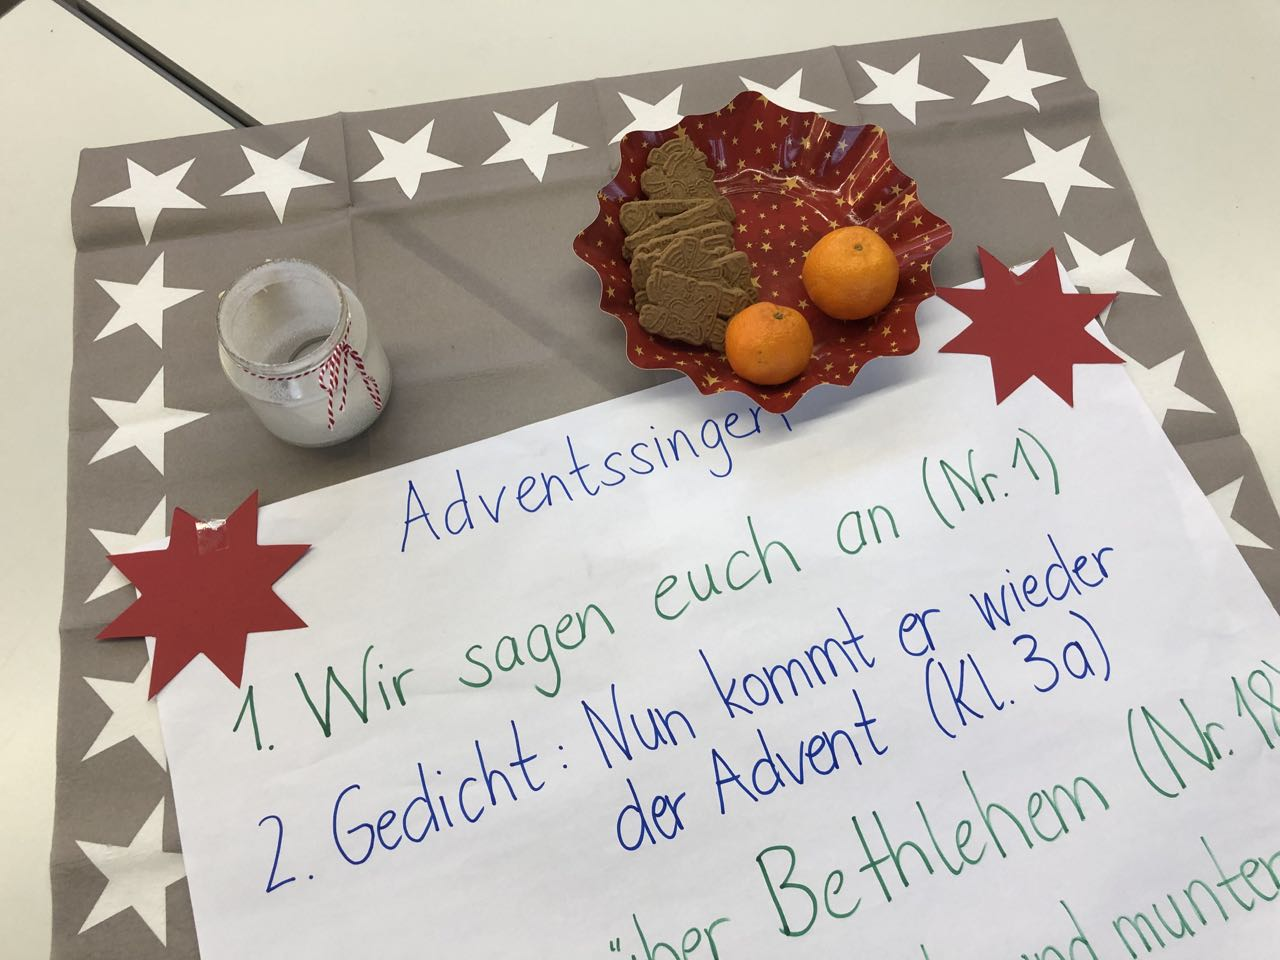 2018-12-03_Adventssingen11.jpg